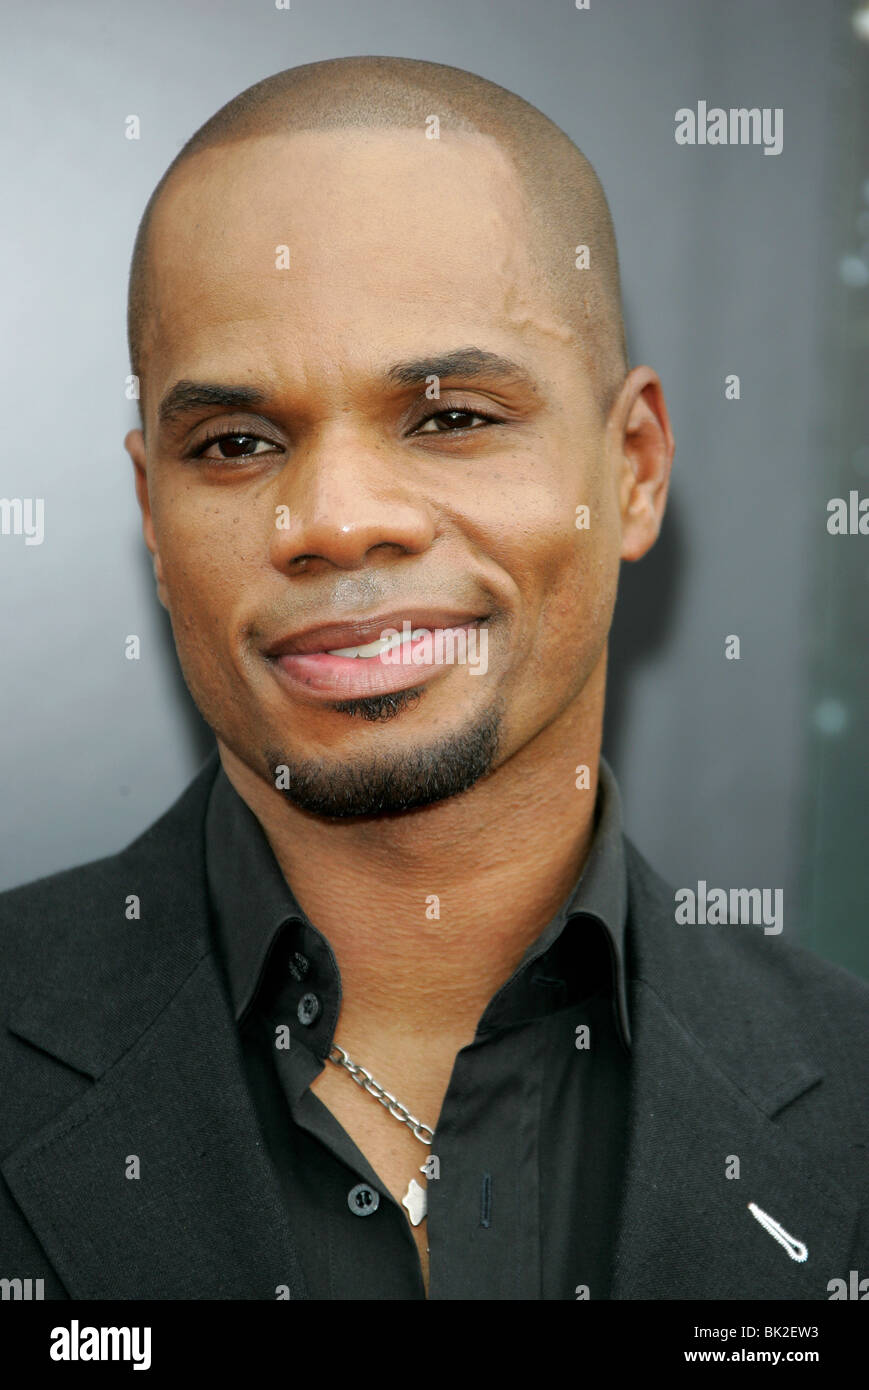 Kirk Franklin Stock Photos & Kirk Franklin Stock Images - Alamy